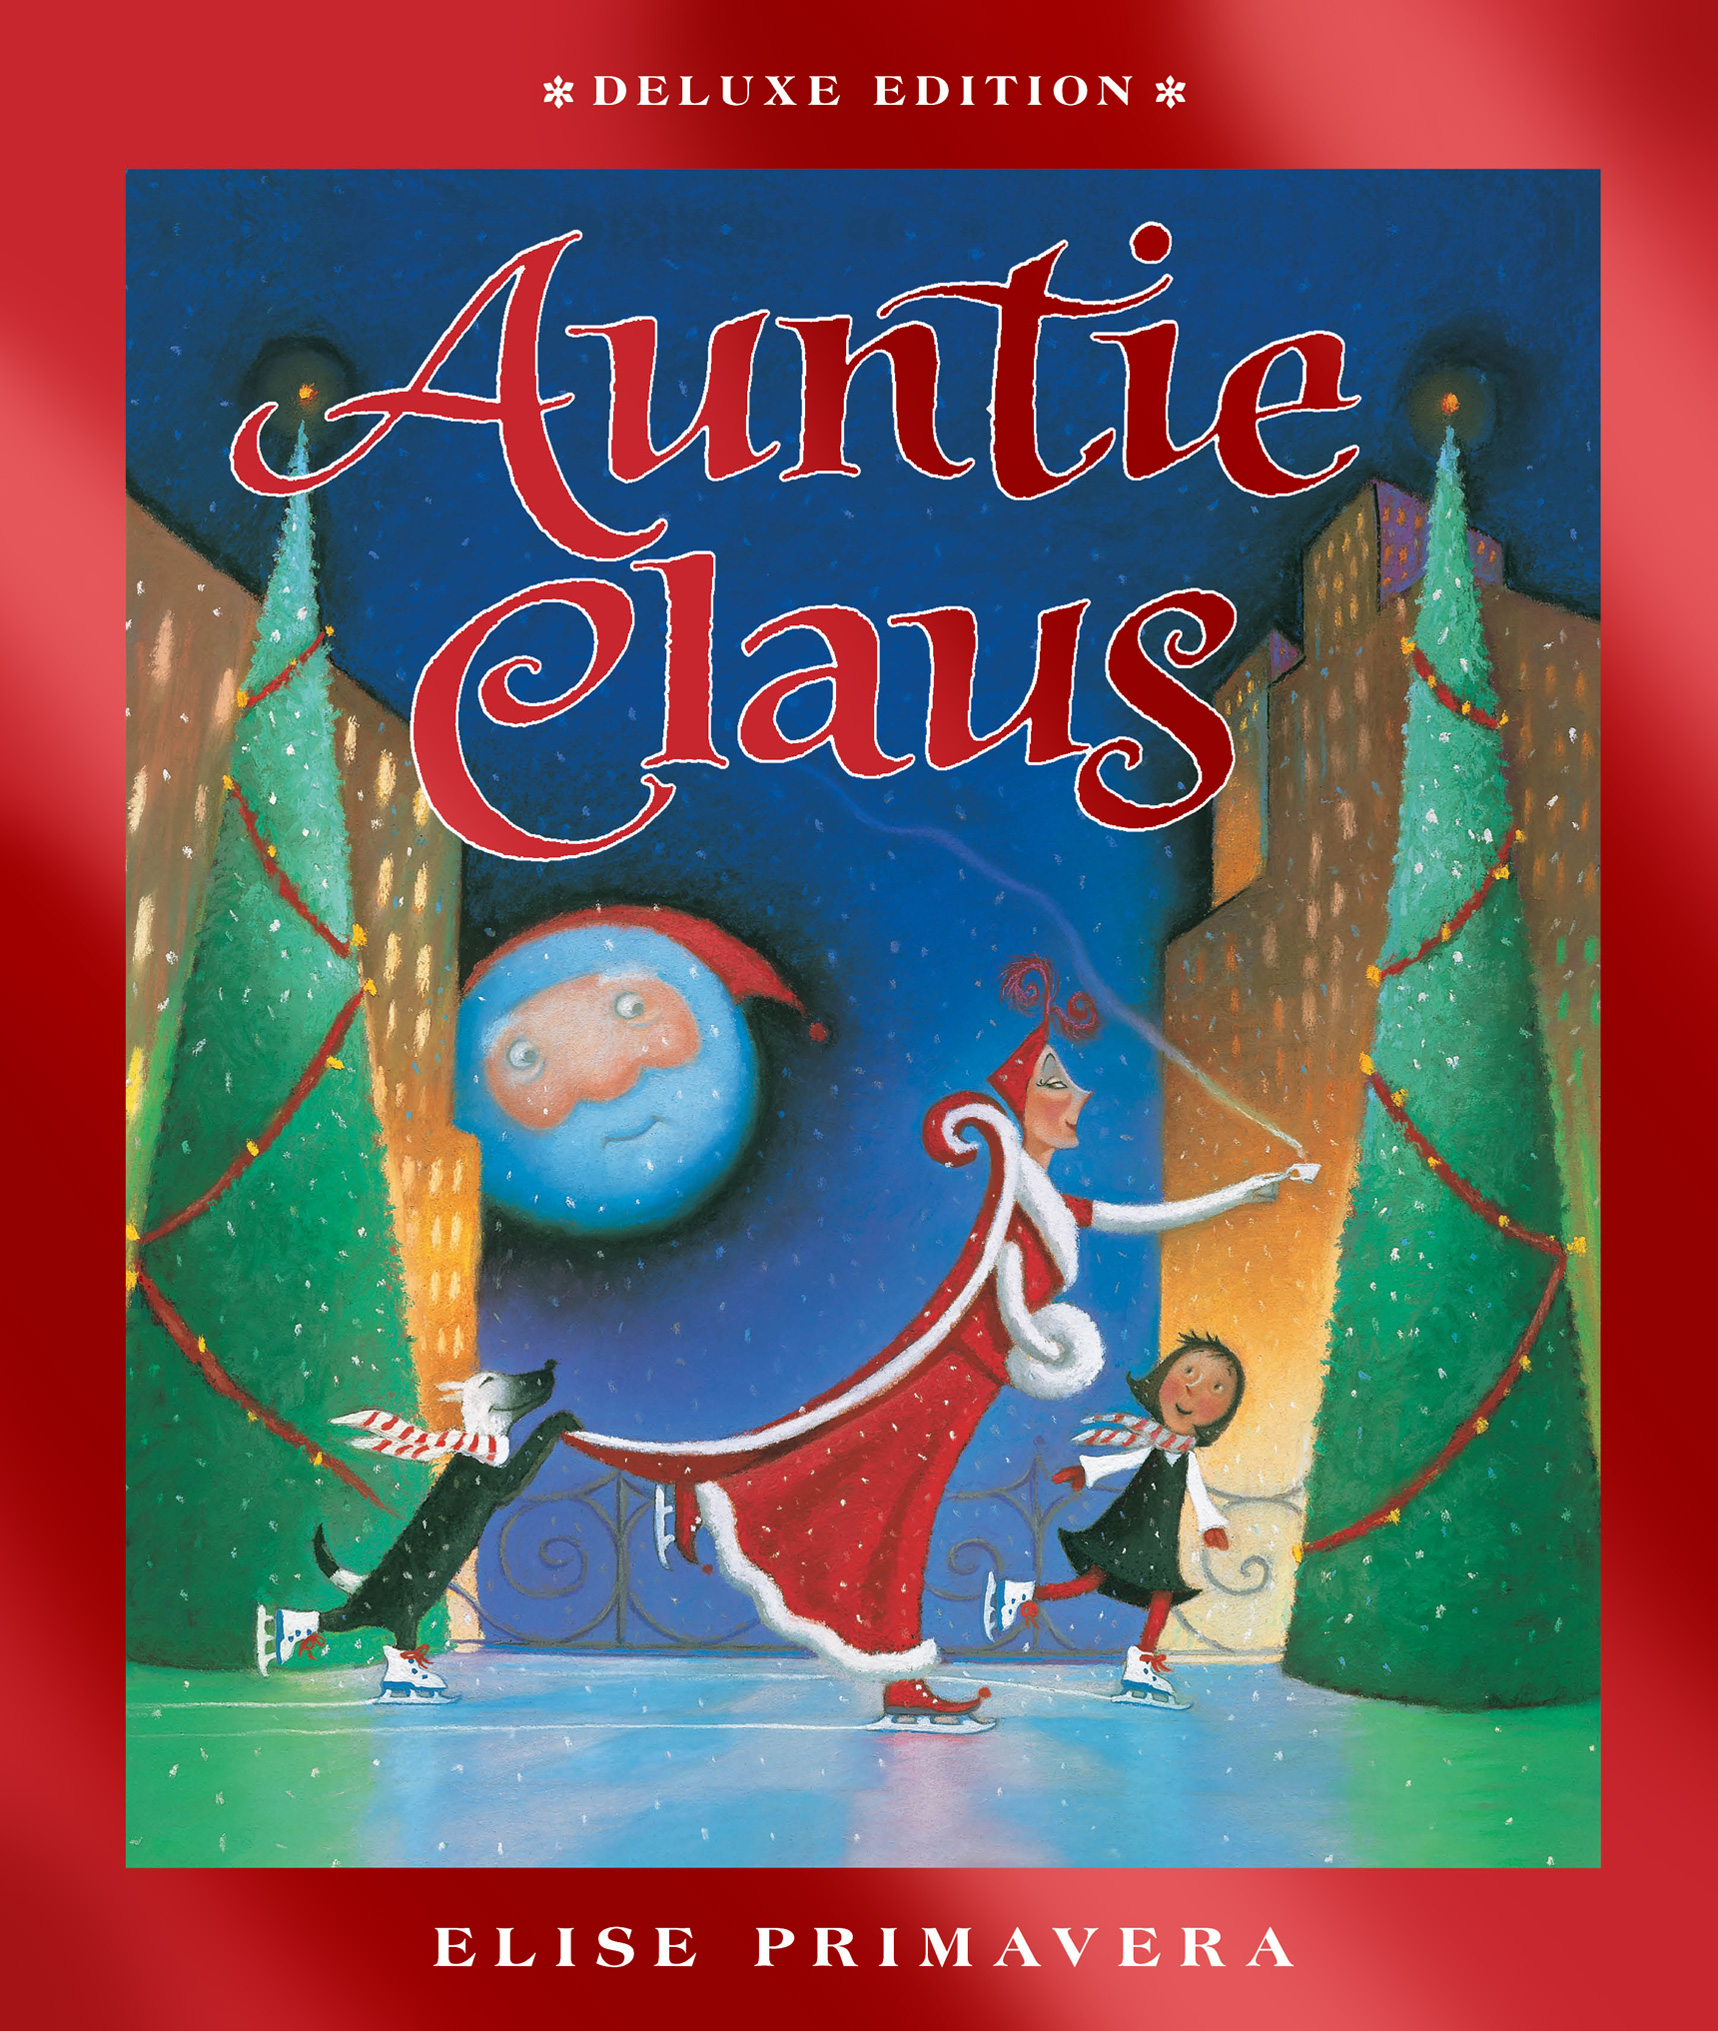 Auntie Claus deluxe edition-9780544538726